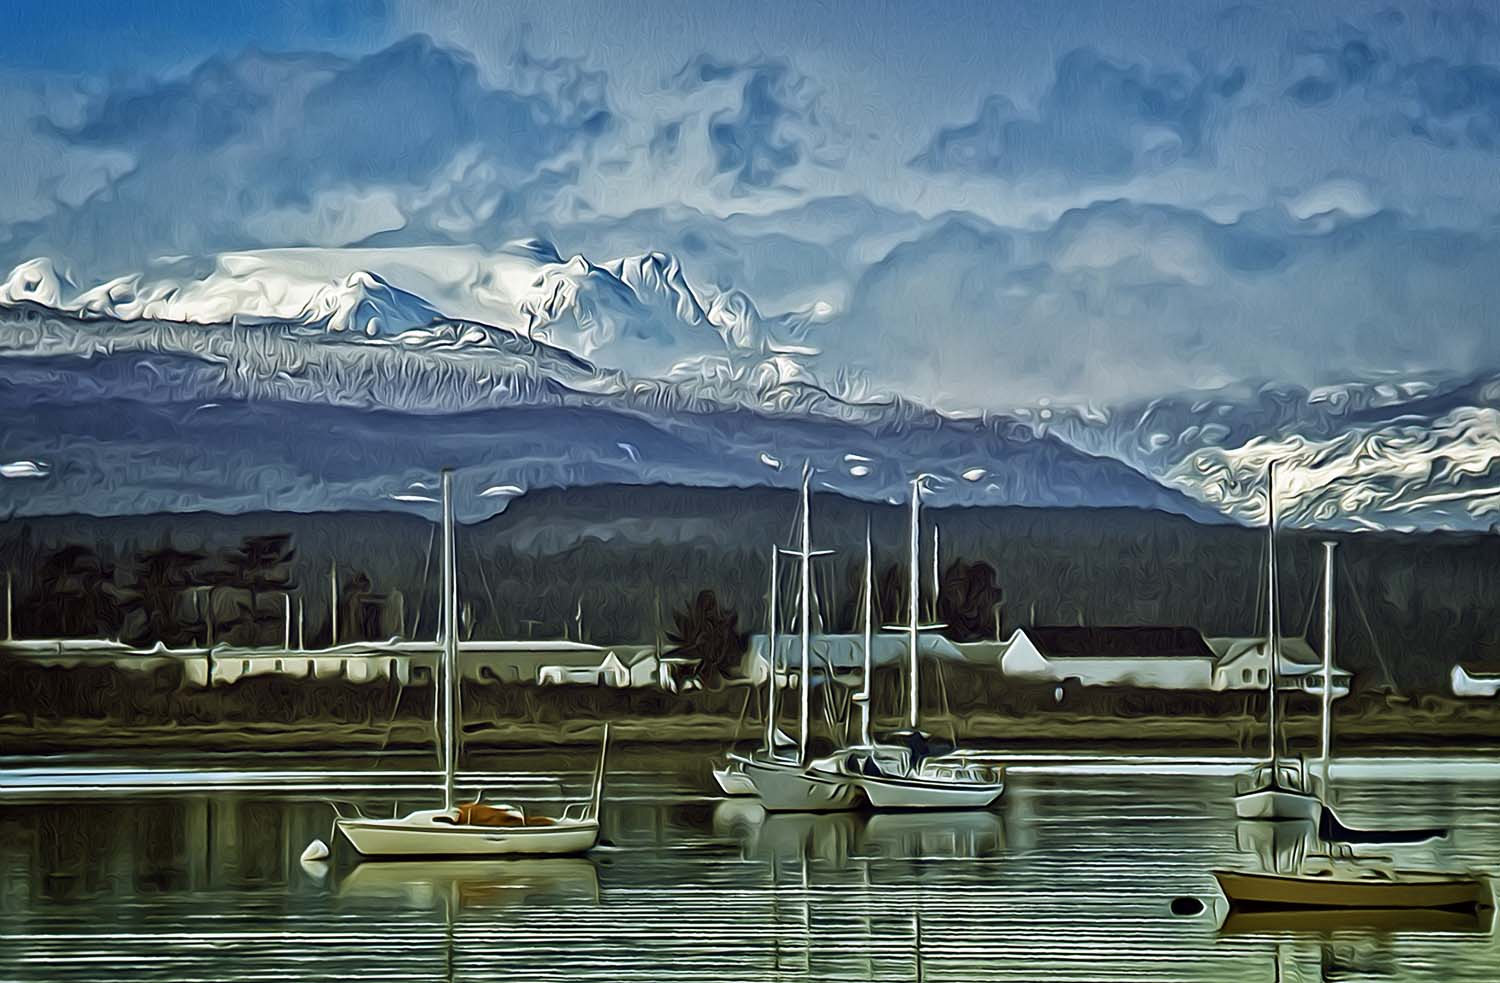 Comox Glacier, Comox Harbour, and boats